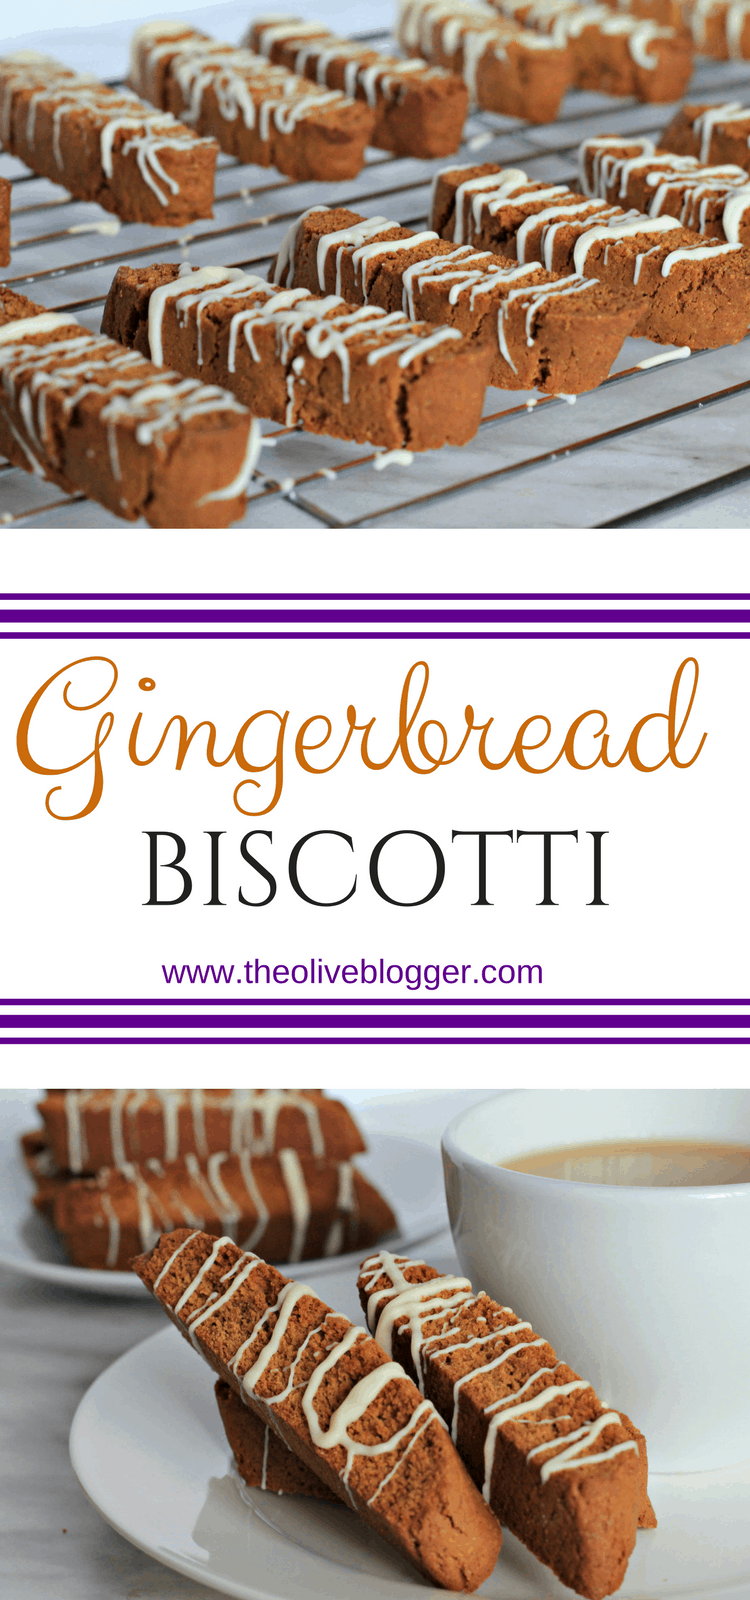 Gingerbread Biscotti - a fun take on a traditional Christmas cookie that everyone will love. The slight spice of the cookie goes well with a cup of coffee or tea. #Biscotti #Gingerbread #GingerbreadBiscotti #ChristmasCookies